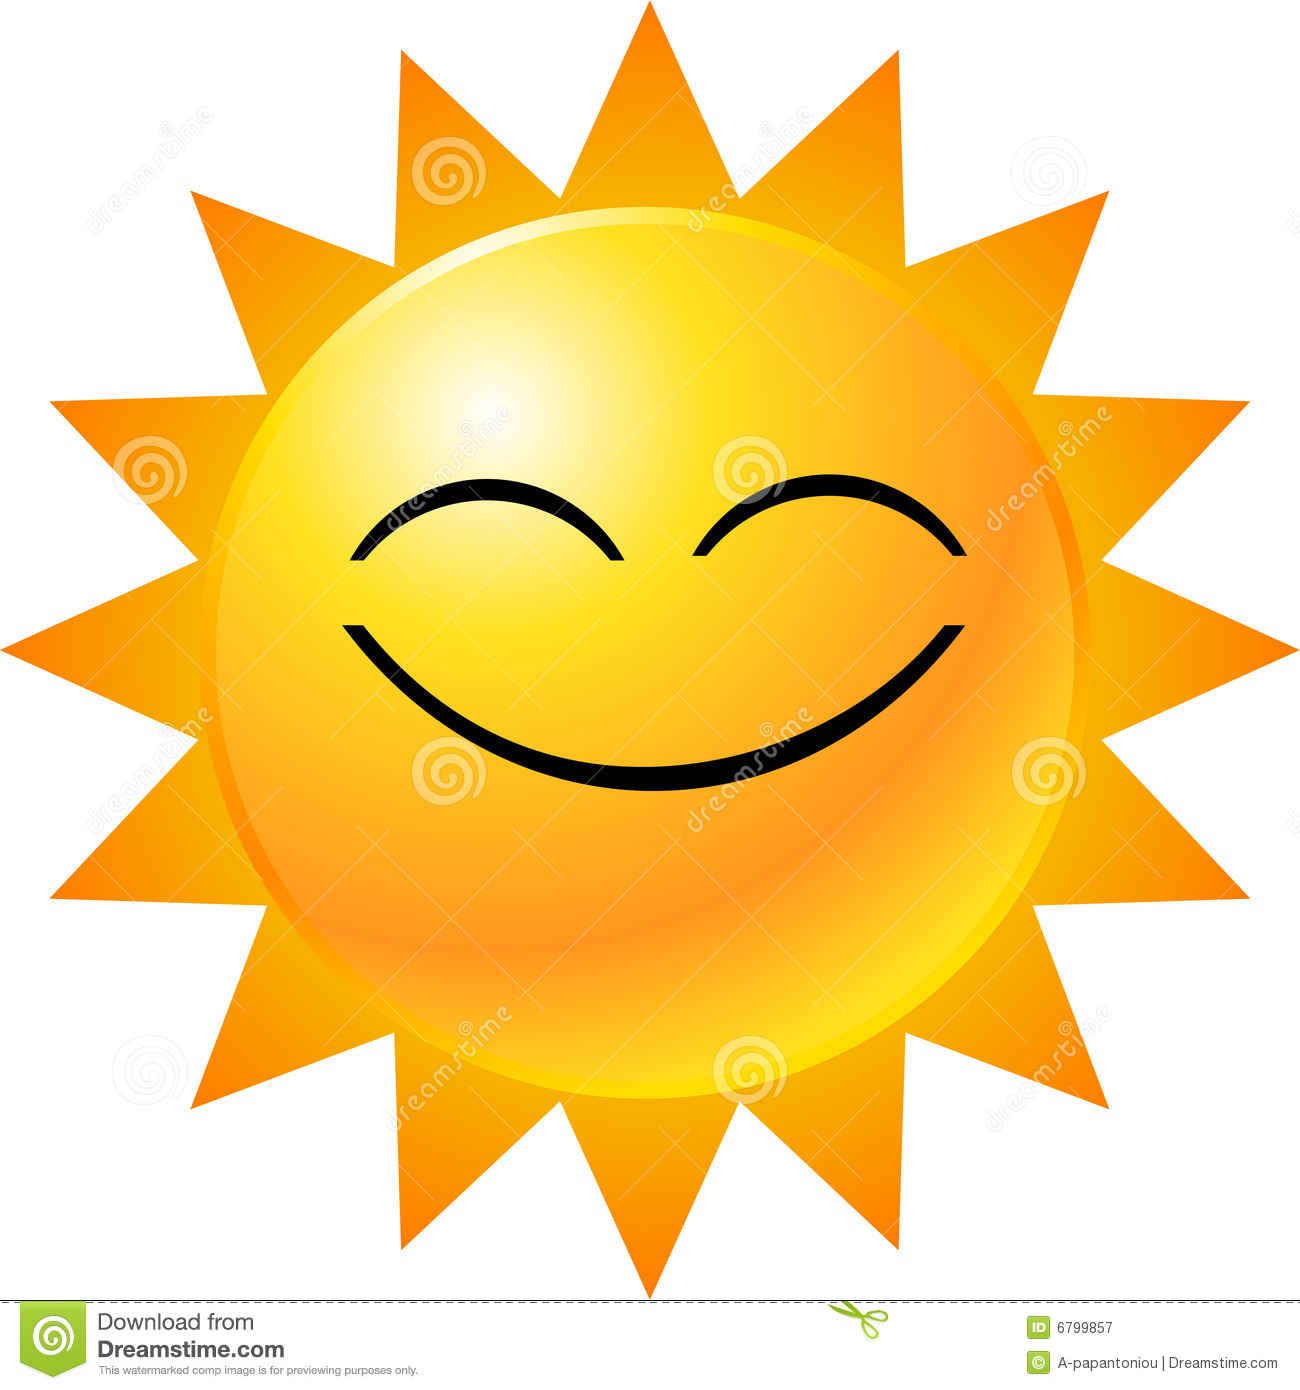 Sunny Smiling Face Clipart #1-Sunny Smiling Face Clipart #1-13